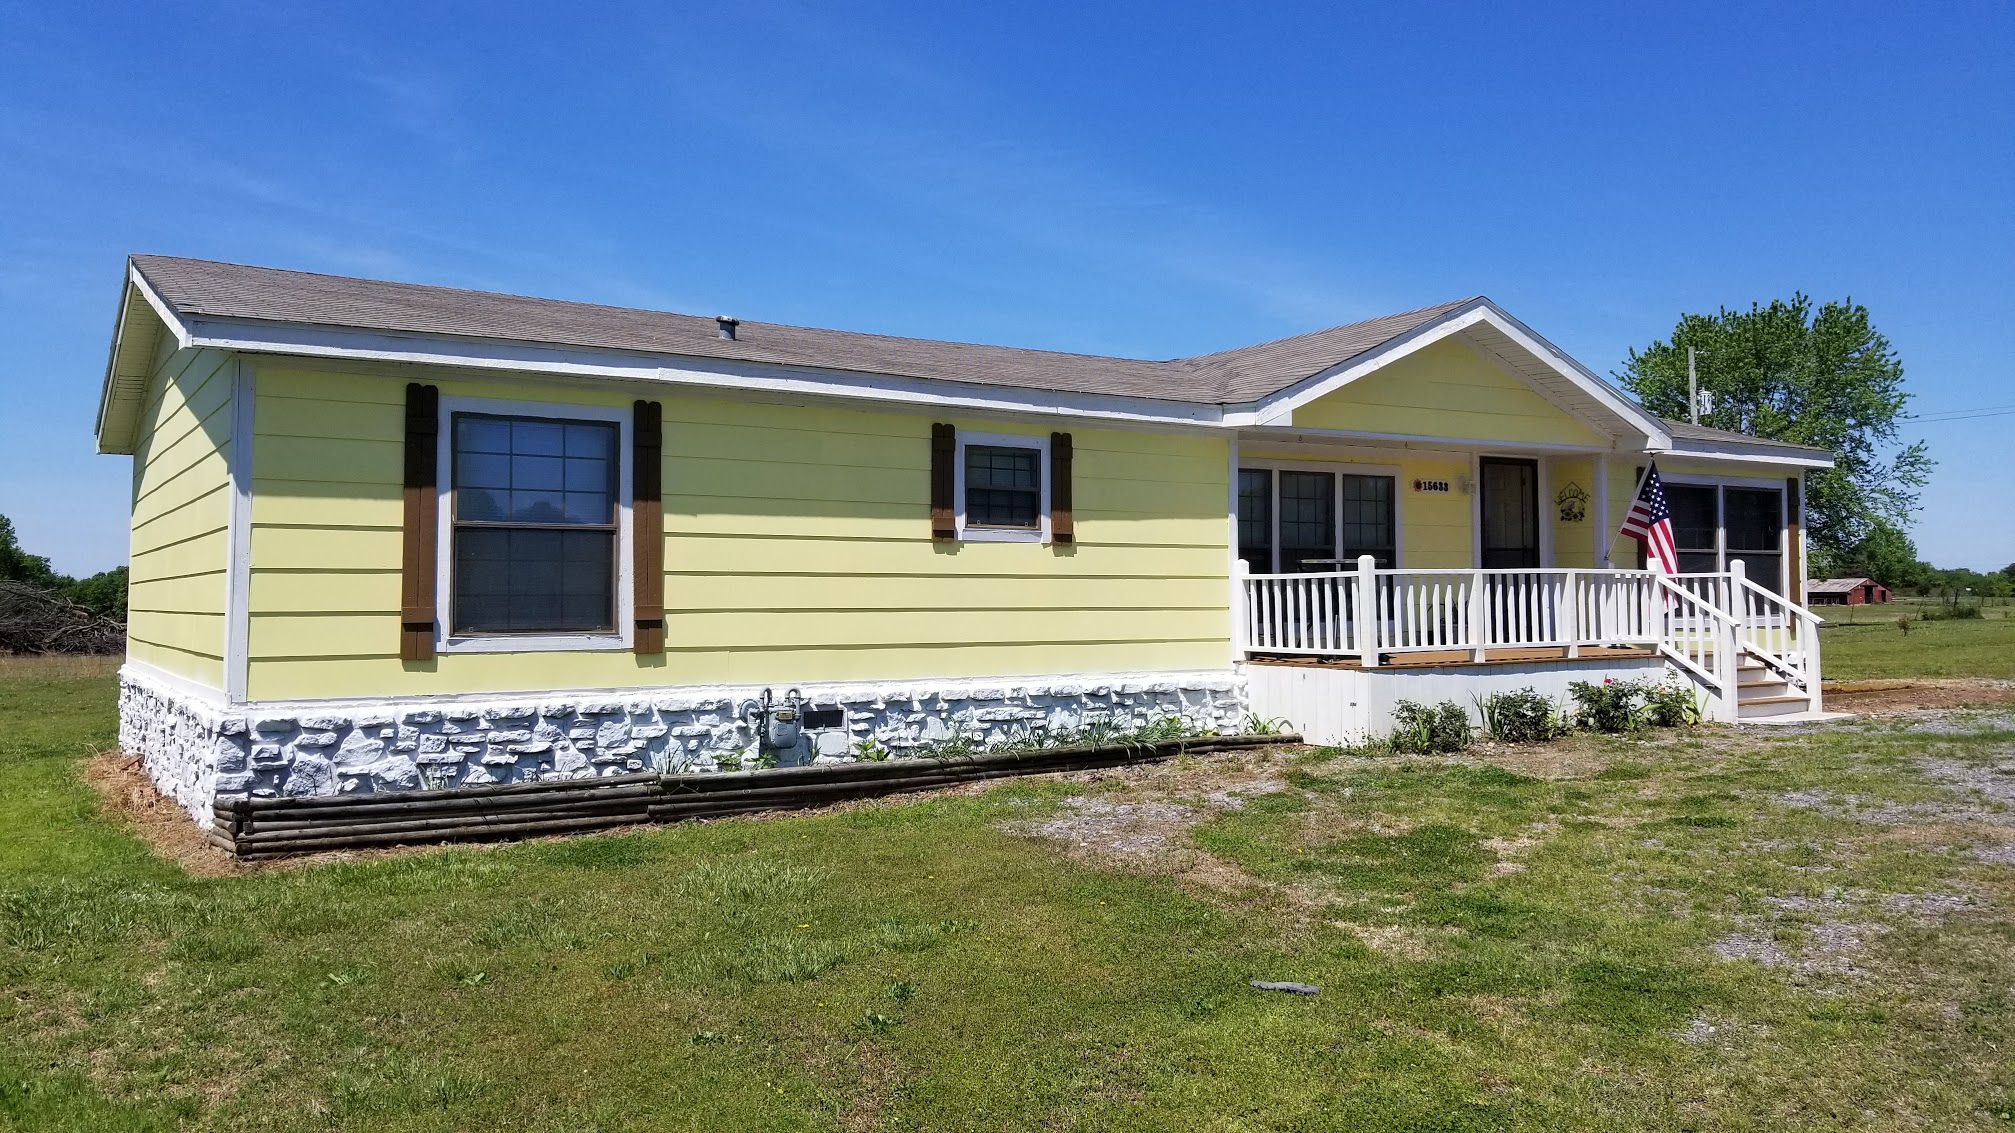 New yellow siding